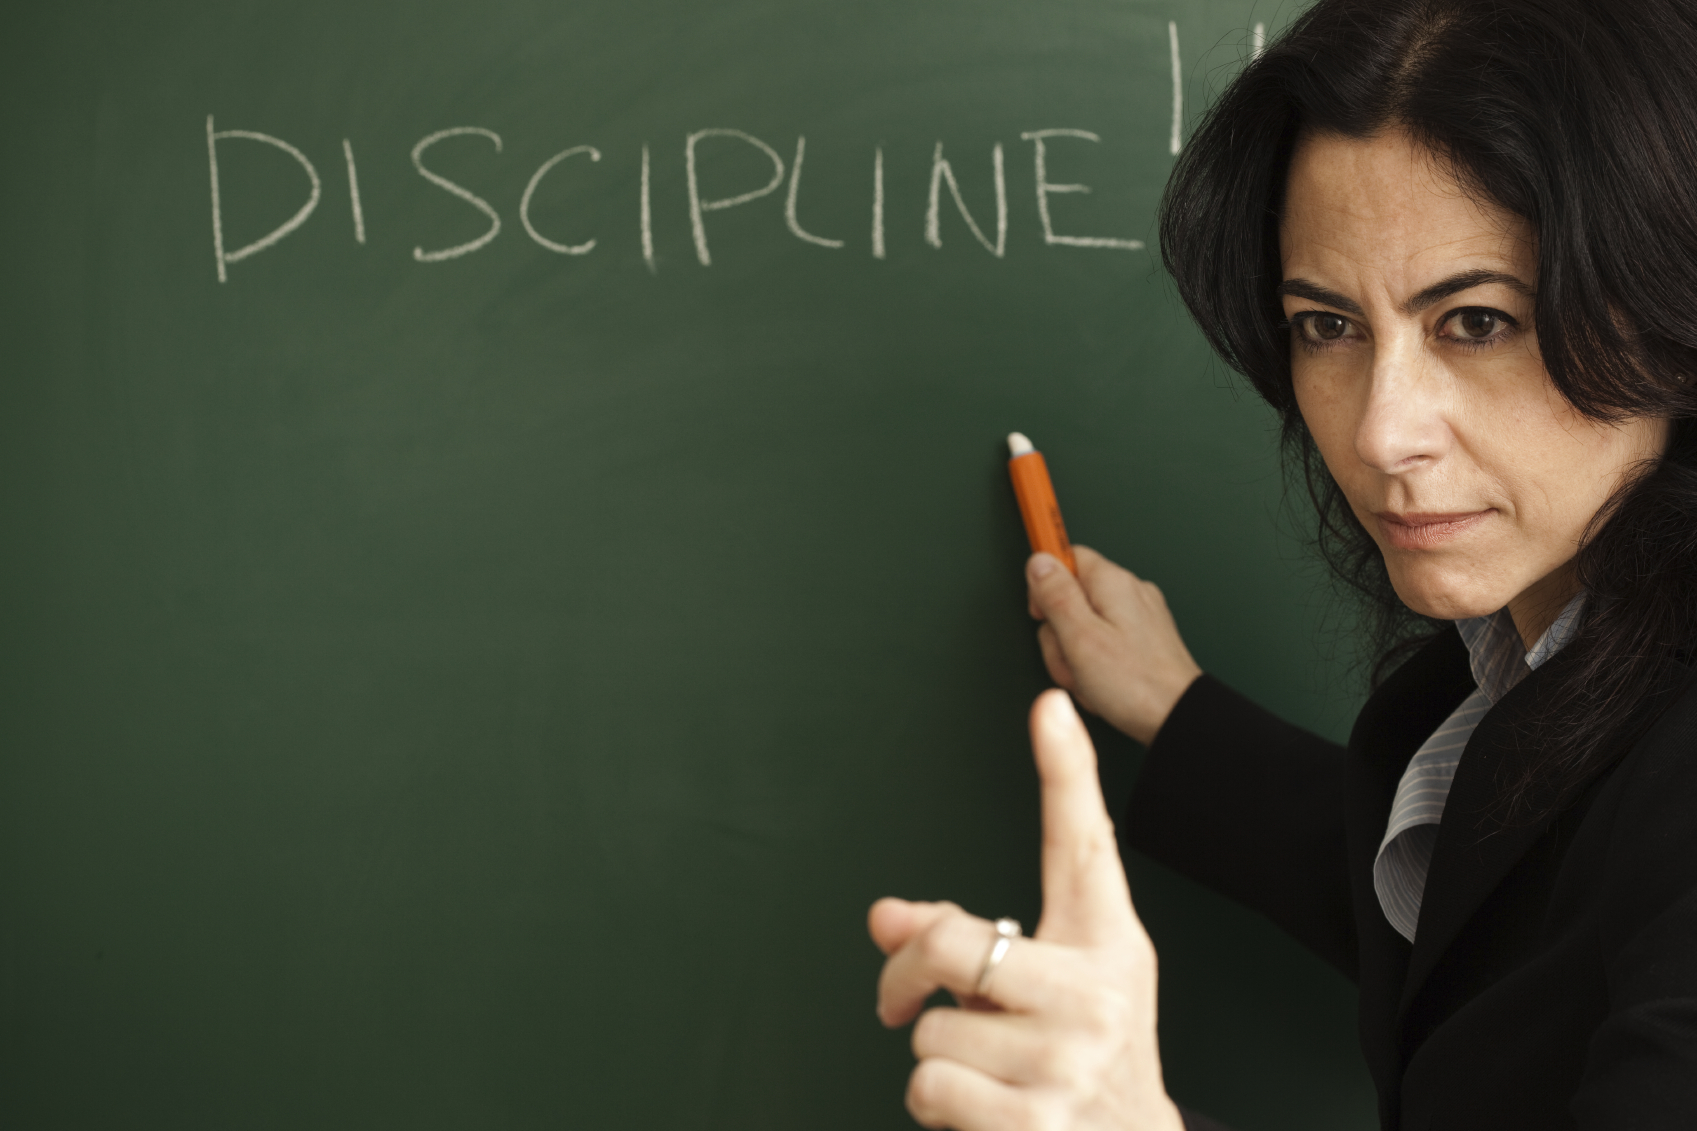 causes and effects of indiscipline in schools Causes of indiscipline: effort and talent, according to a survey conducted by the university of southern california's marshall school of business.